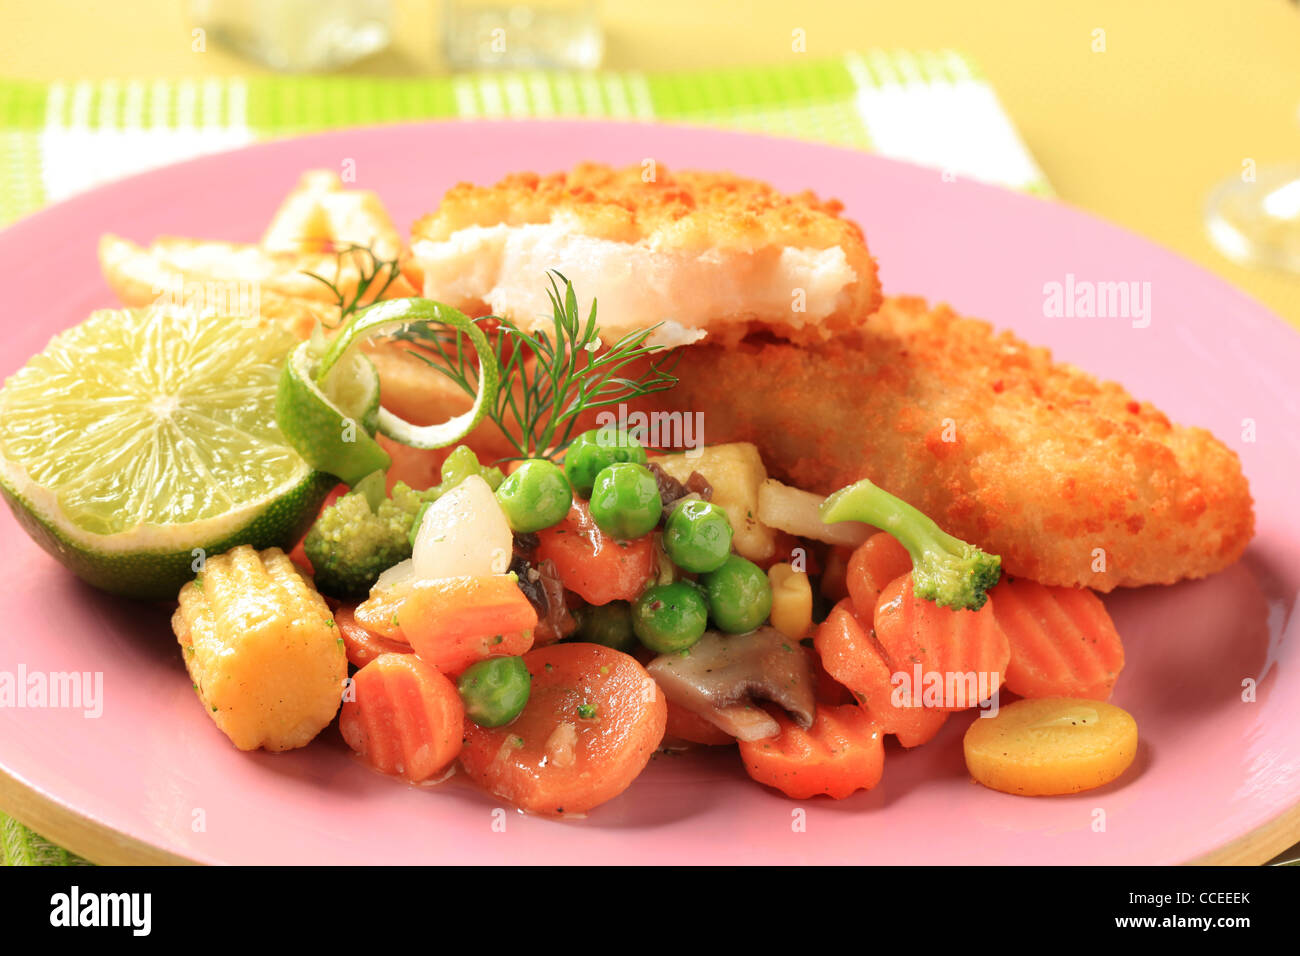 Fried fish served with French fries and mixed vegetables - Stock Image